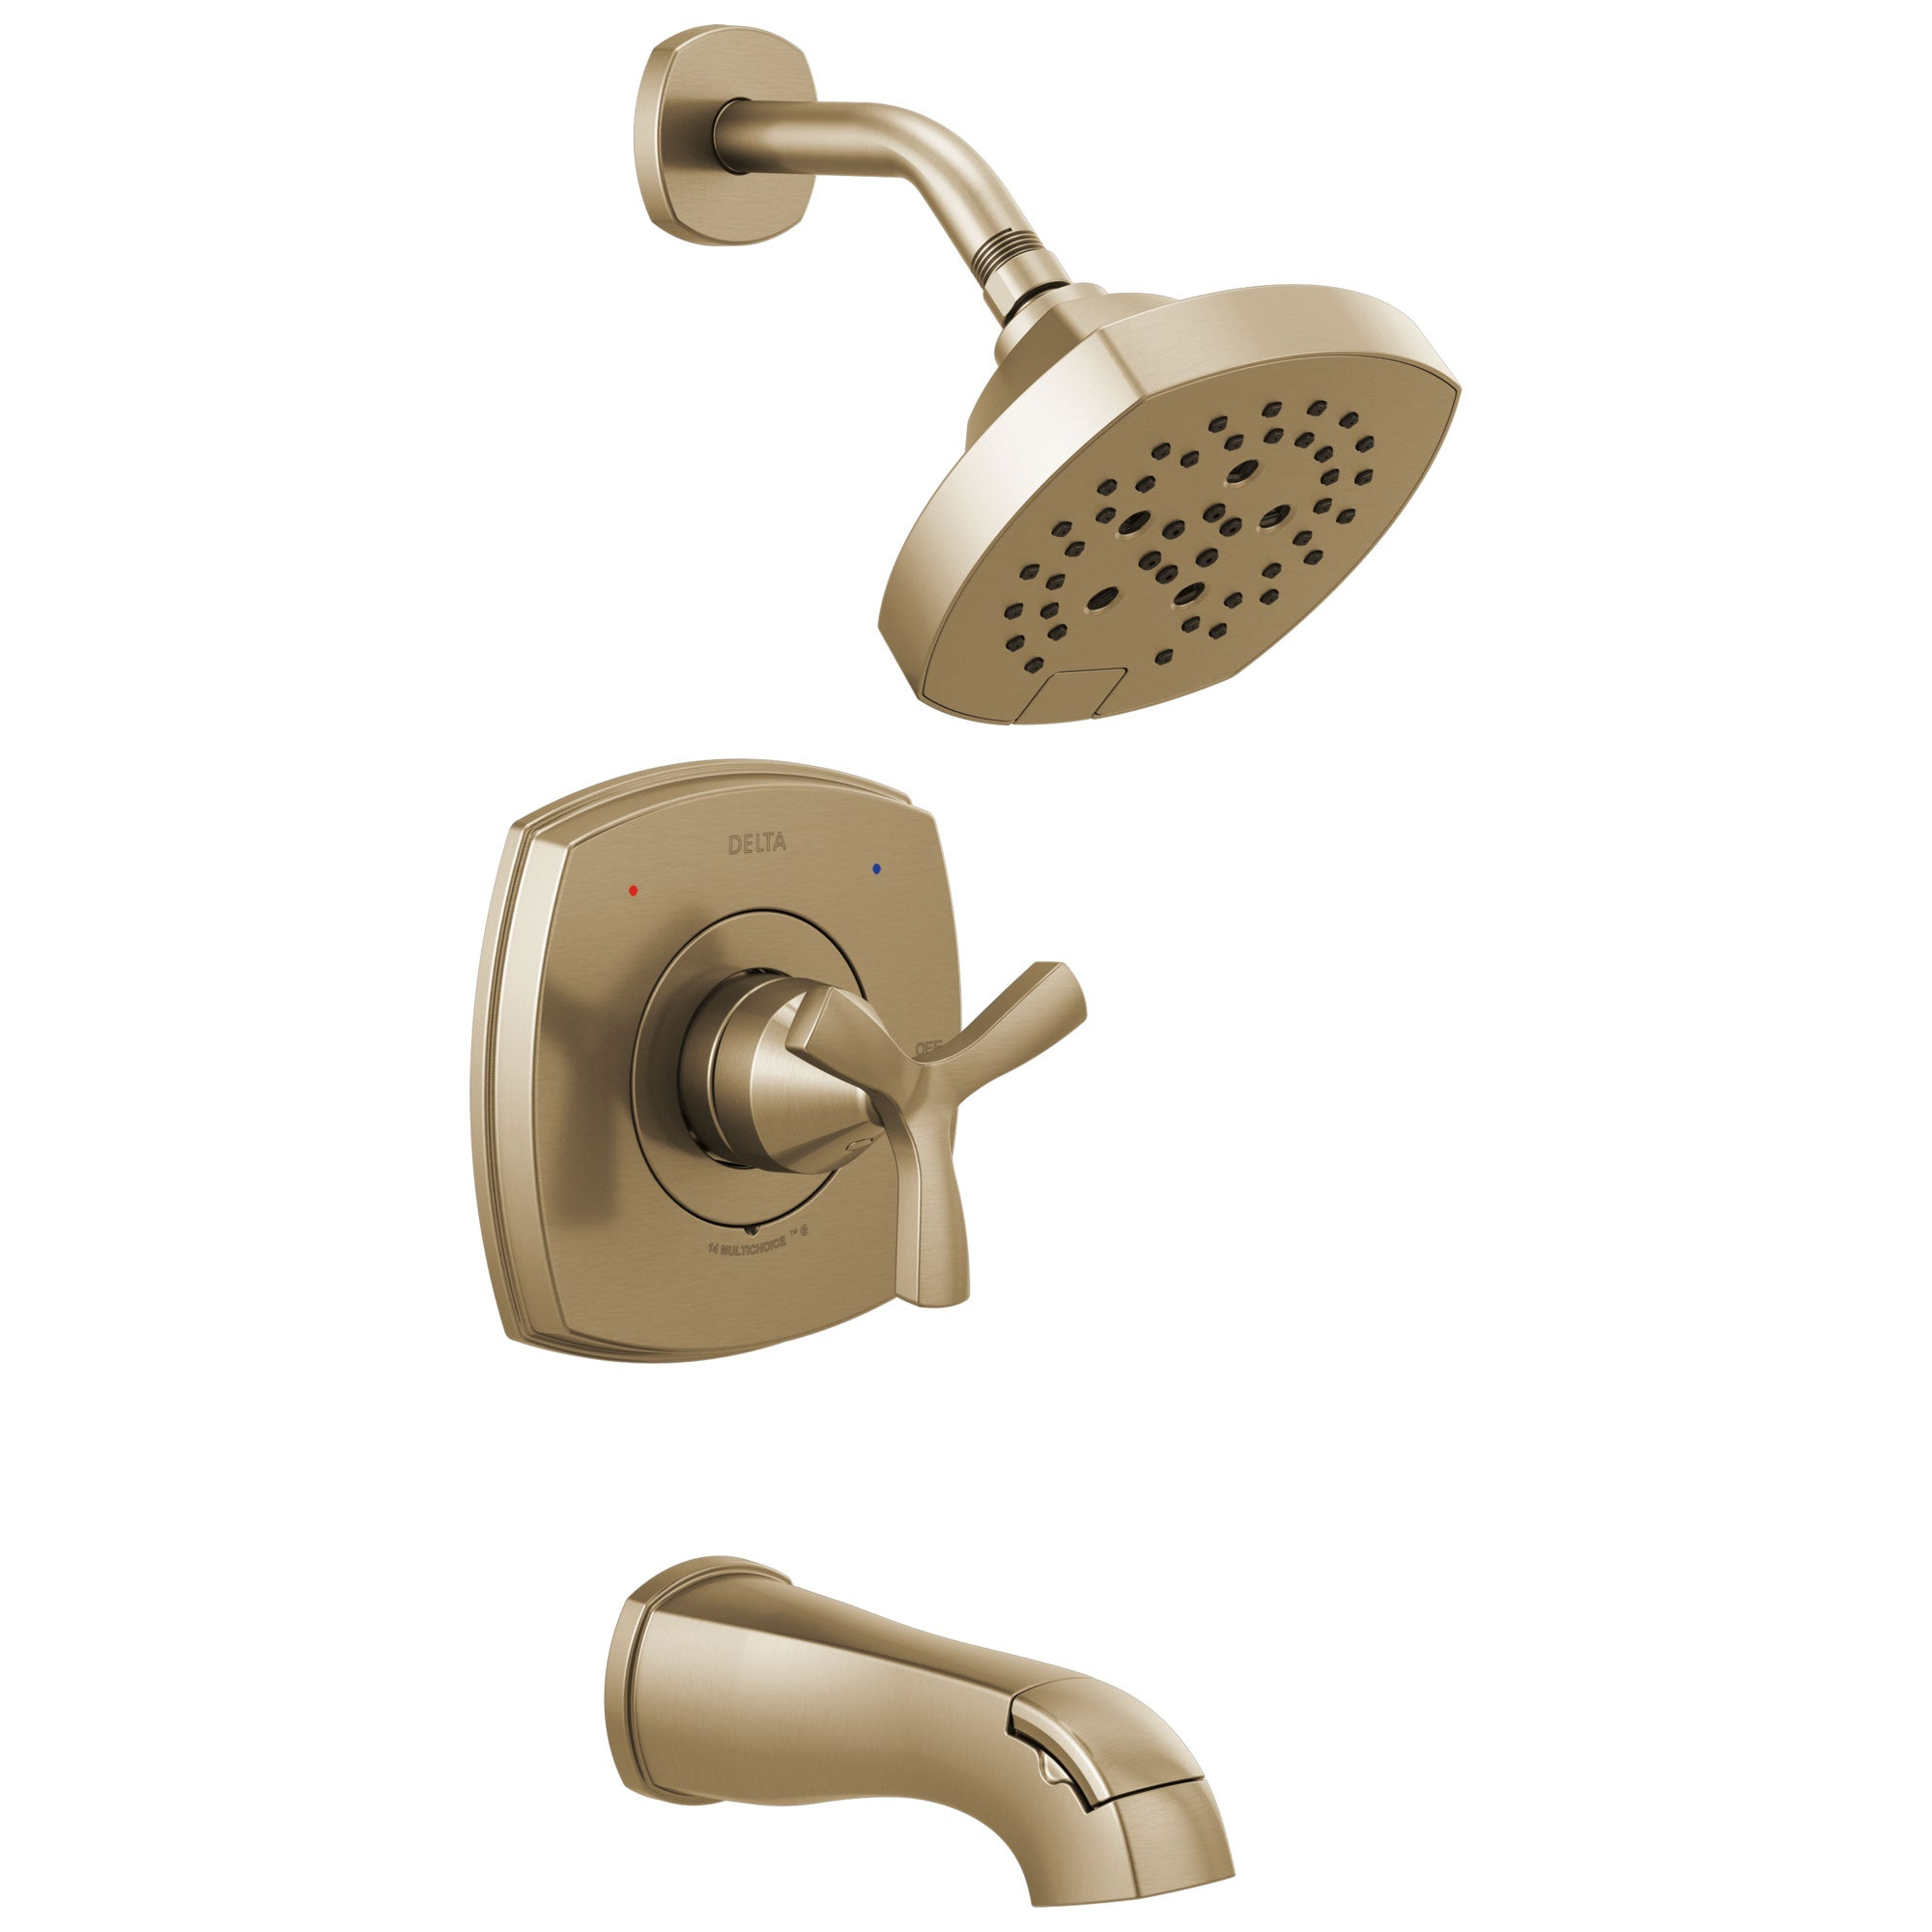 Delta Stryke Champagne Bronze Finish 14 Series Cross Handle Tub and Shower Combination Faucet Trim Kit (Requires Valve) DT144766CZ